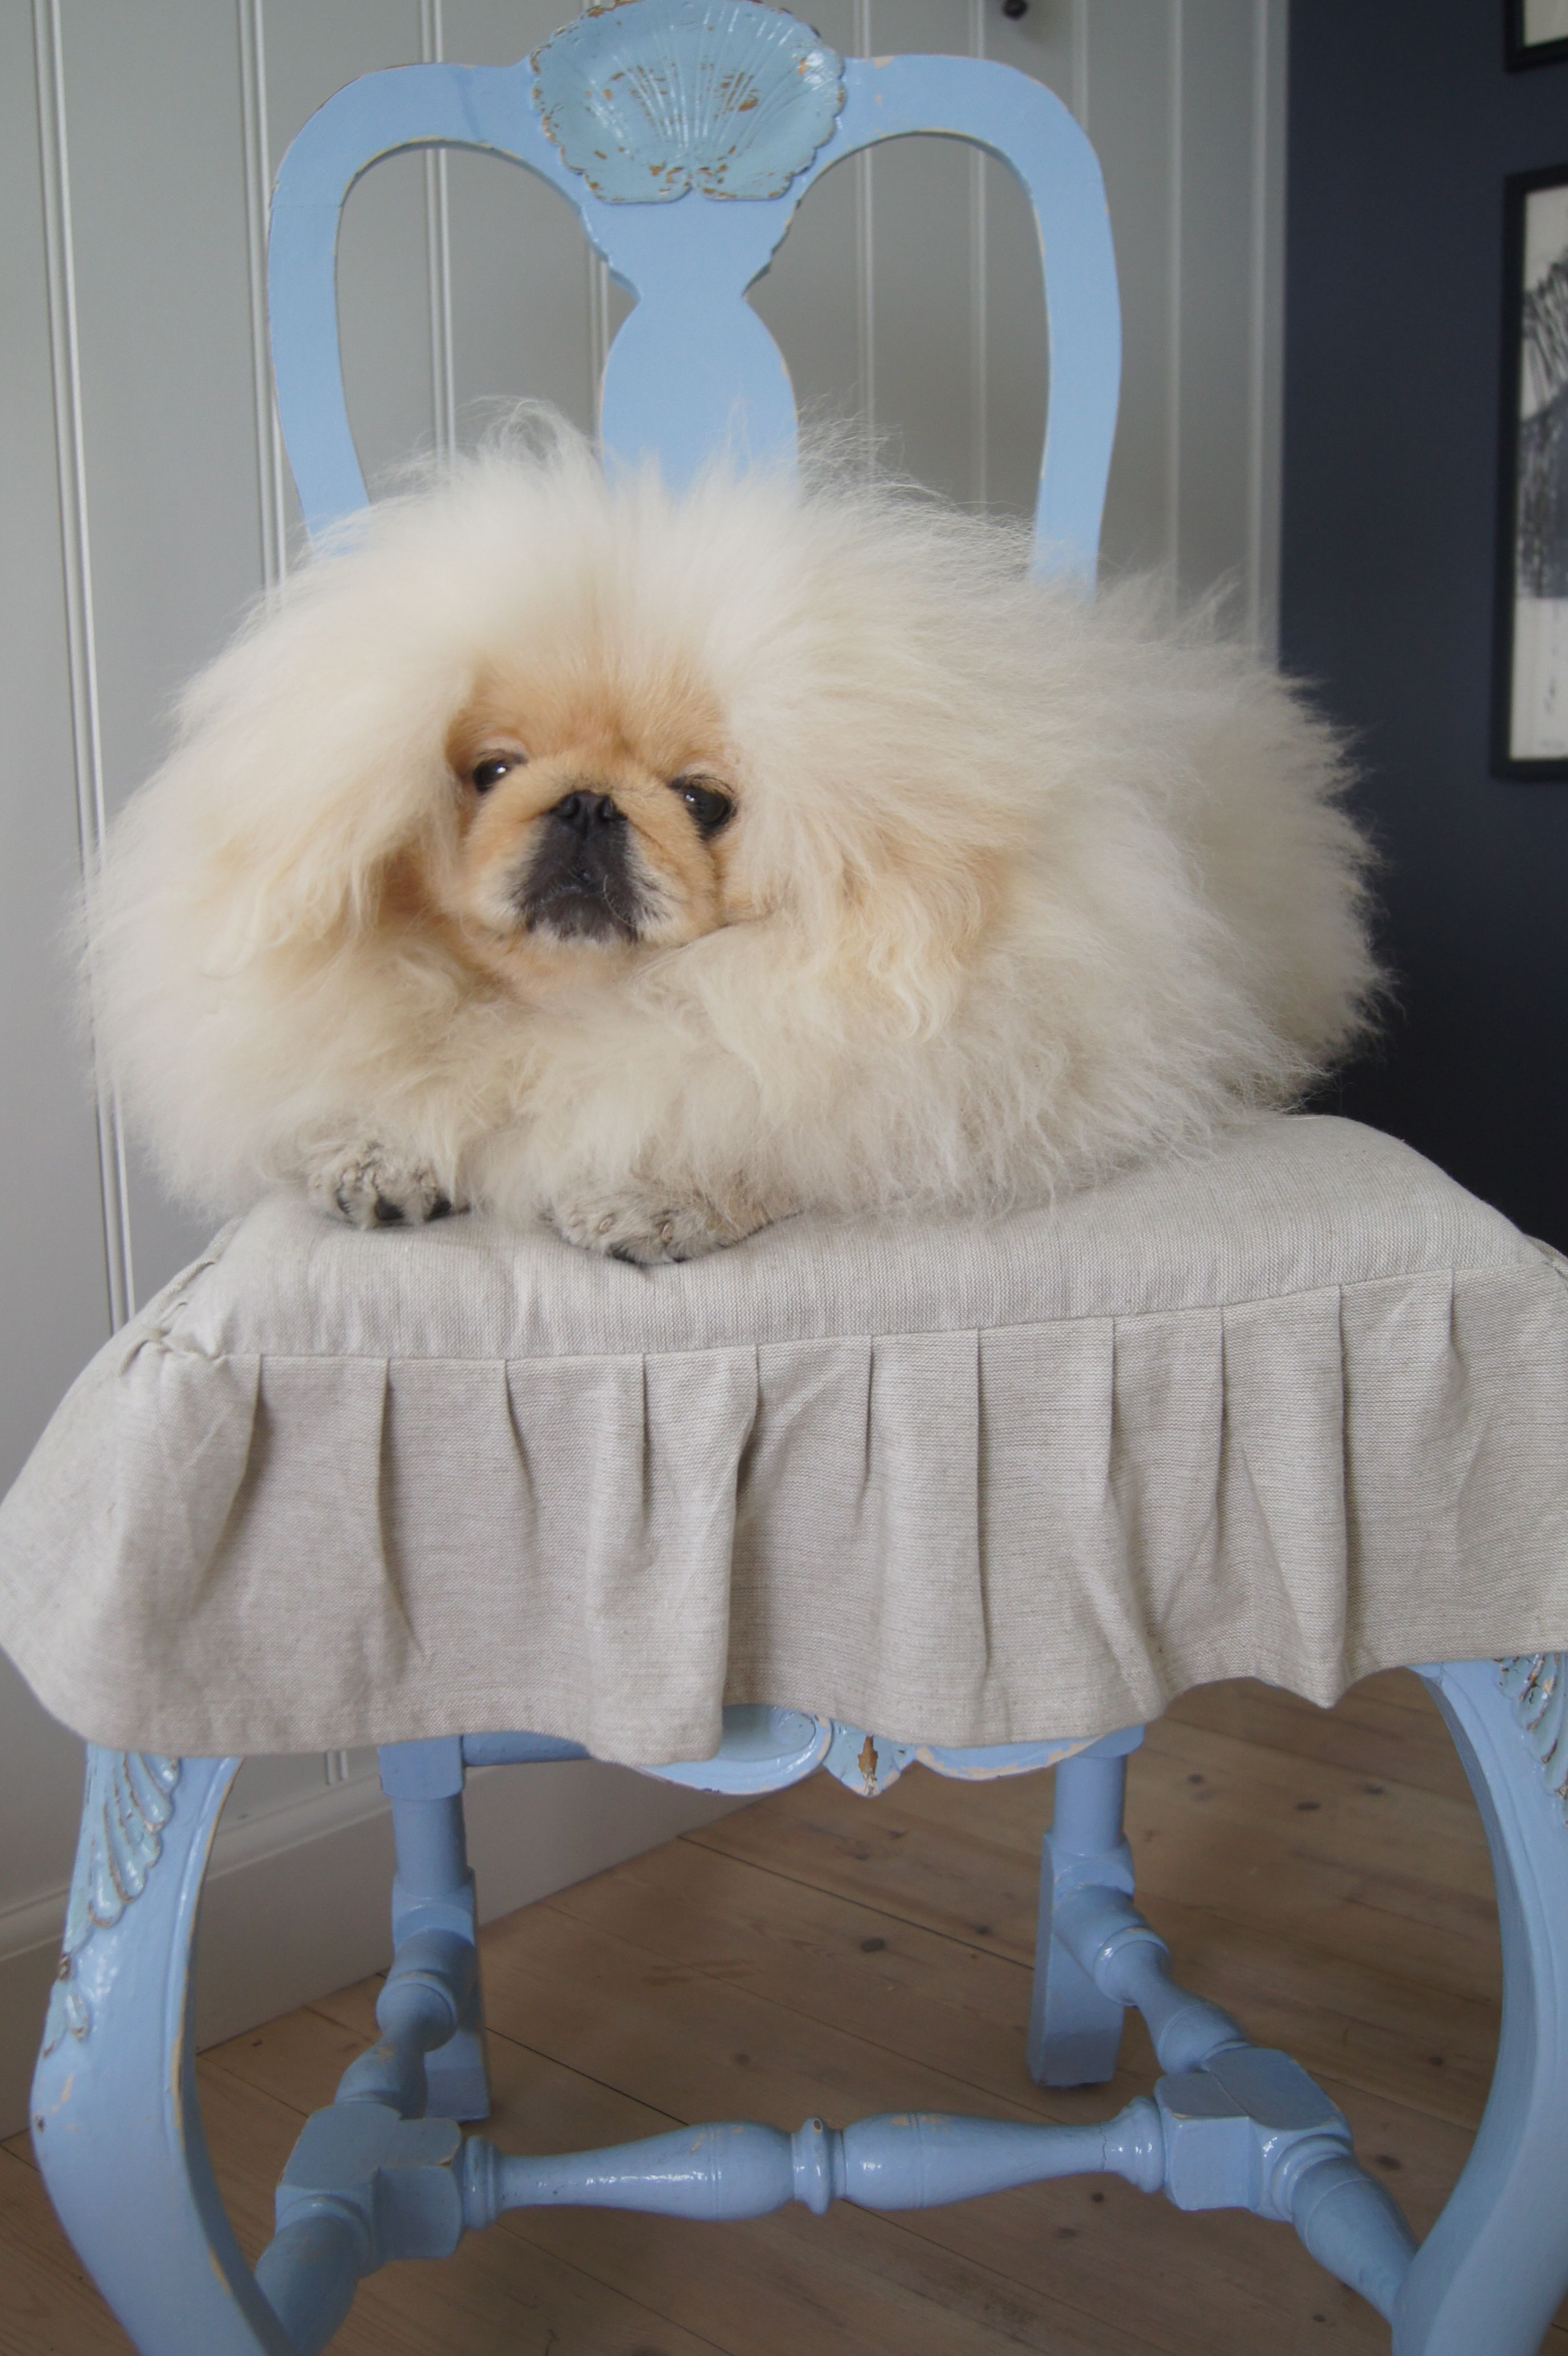 Hello, please tell me how Pekingese dogs are small children. Is there a danger 95